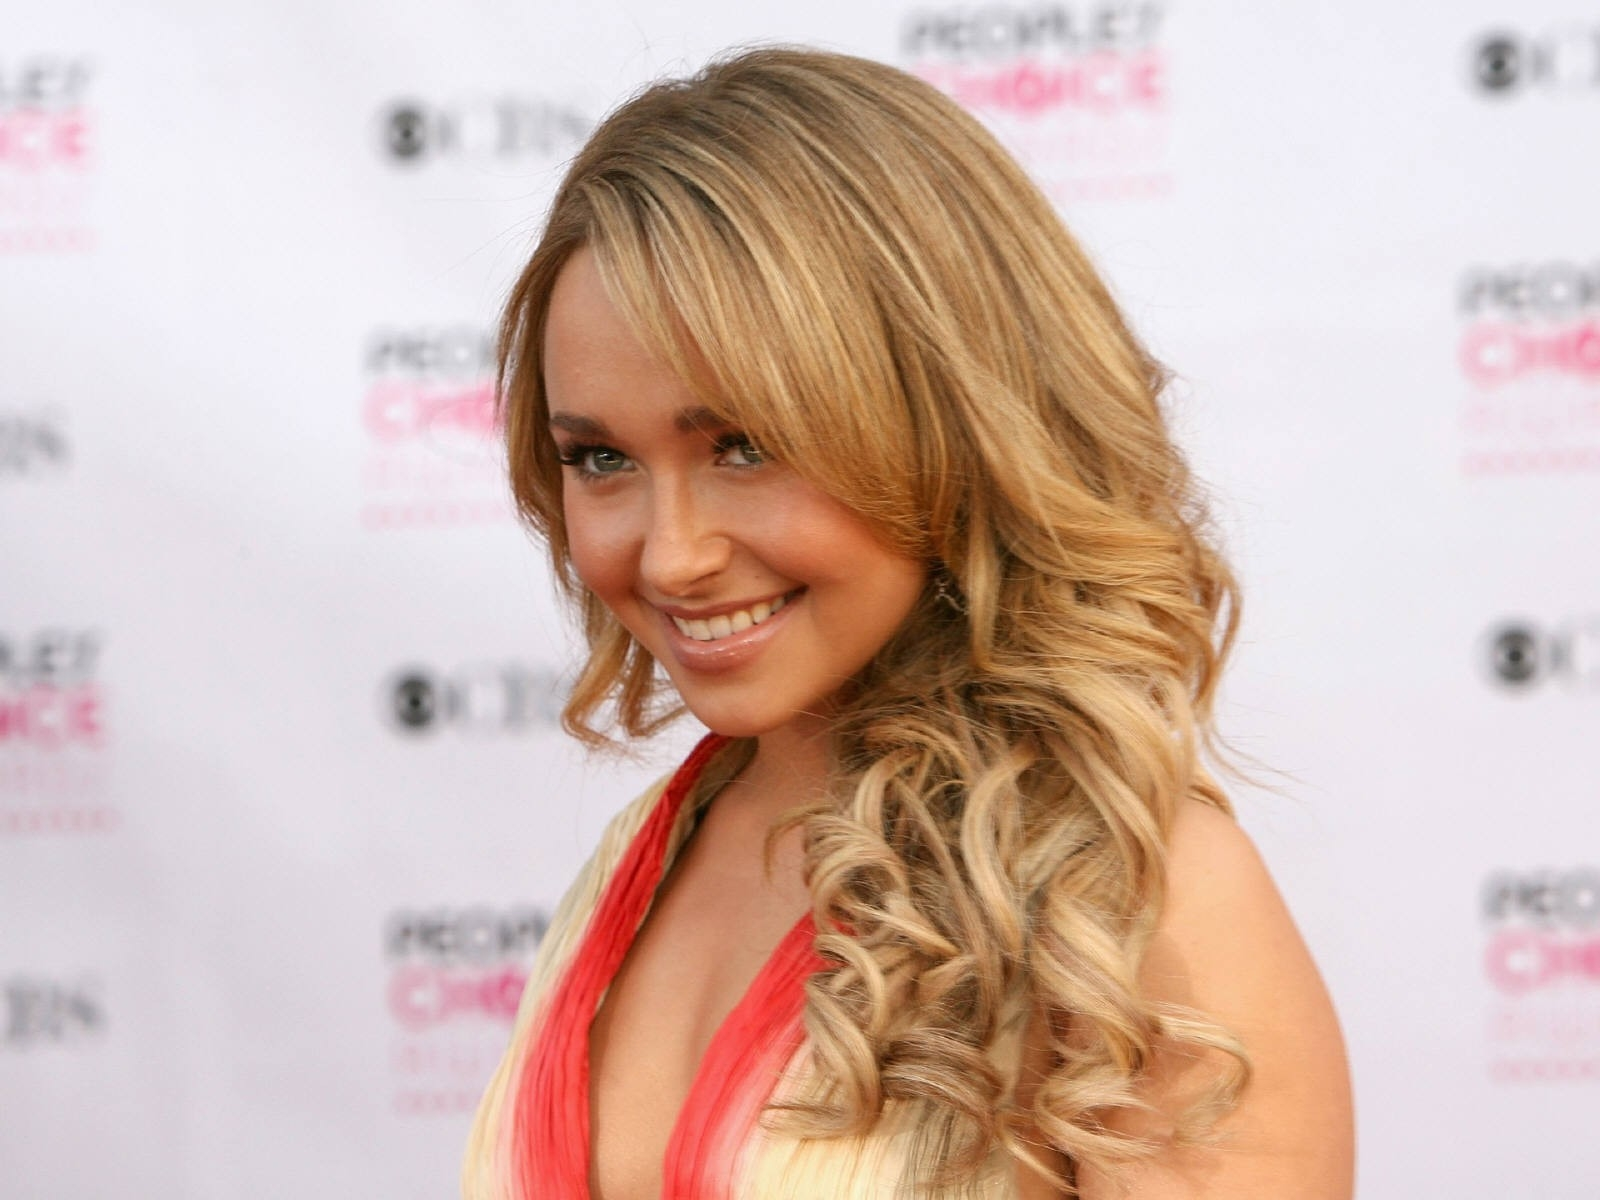 Wallpaper di Hayden Panettiere - 44